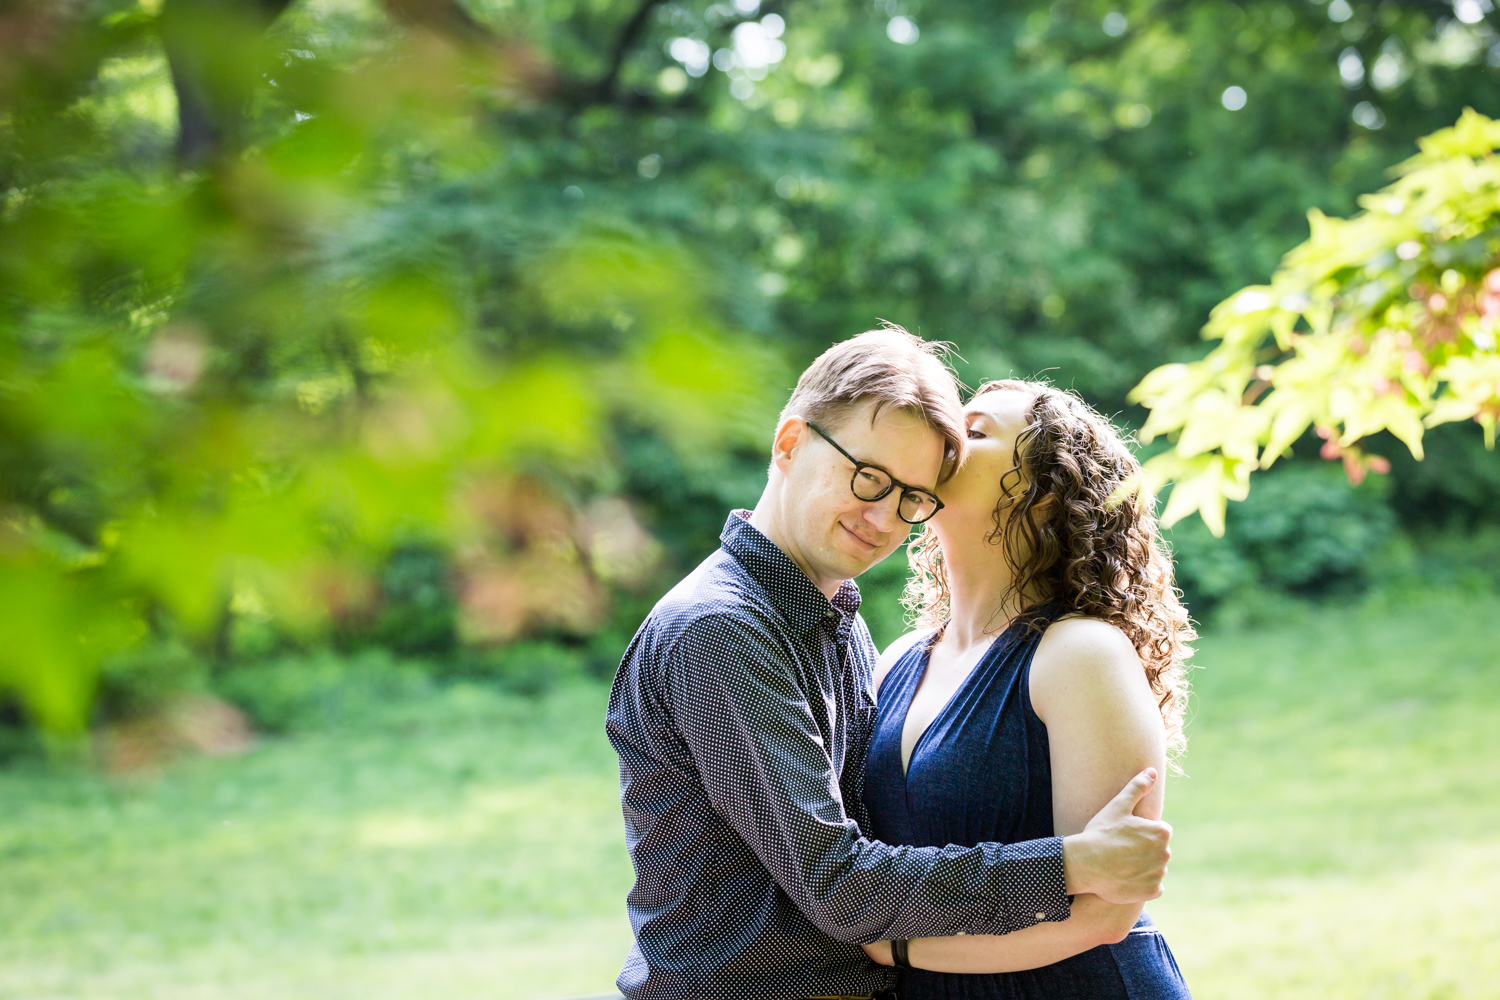 Woman kissing man through leaves in Central Park